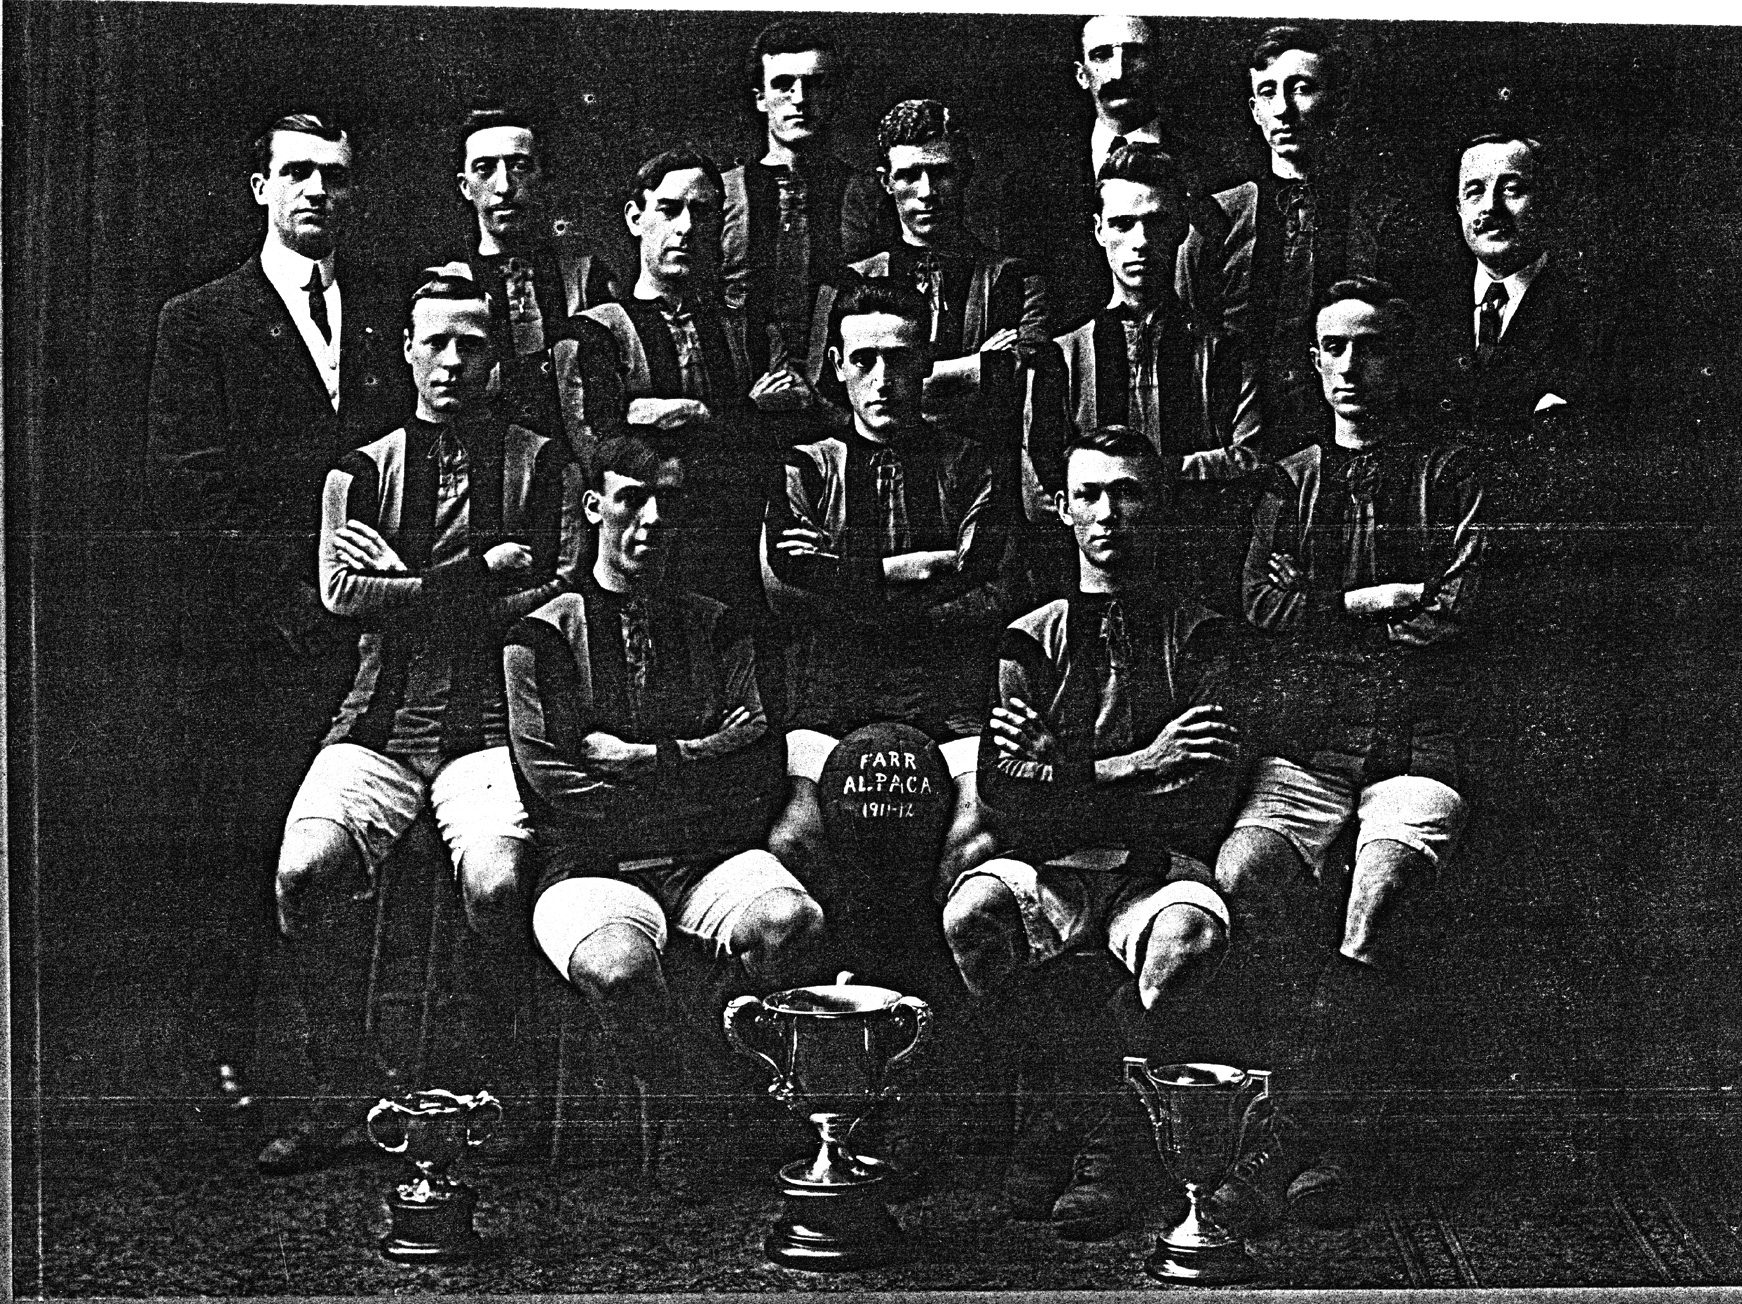 Holyoke Falcos: A Case Study in Researching US Soccer History